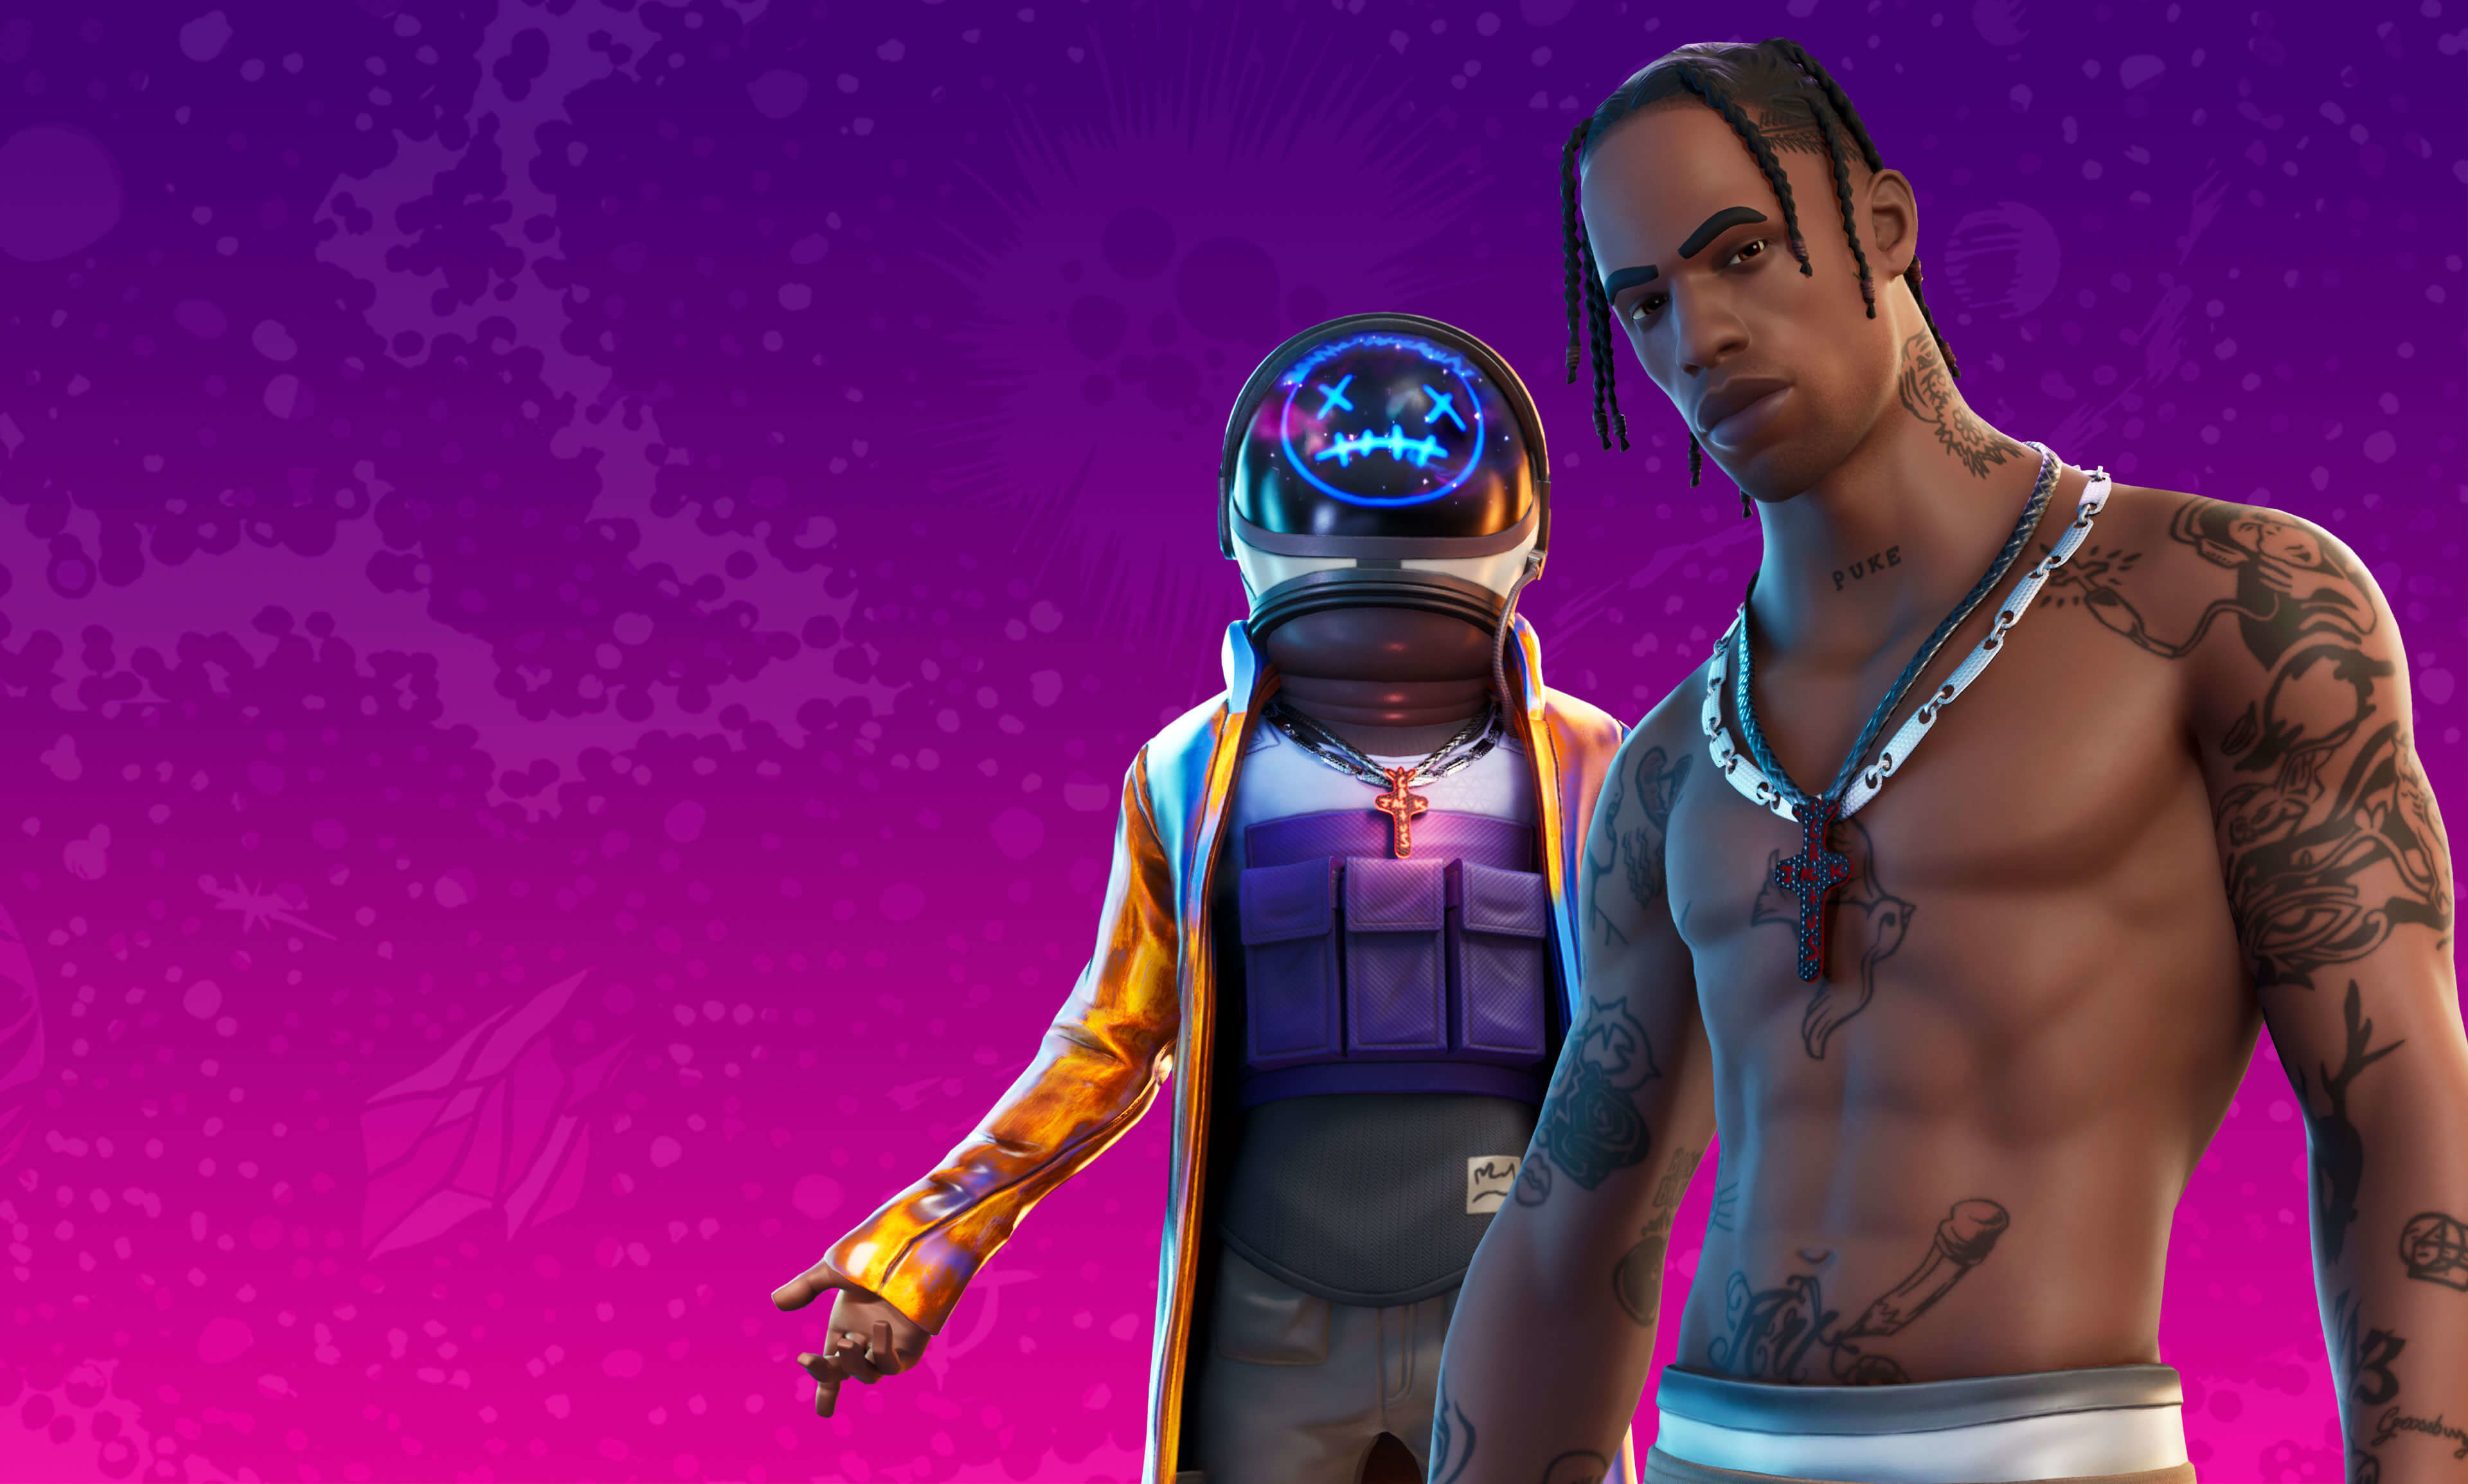 2048x2048 4k Travis Scott Astronomical Fortnite 2 Ipad Air Wallpaper Hd Games 4k Wallpapers Images Photos And Background